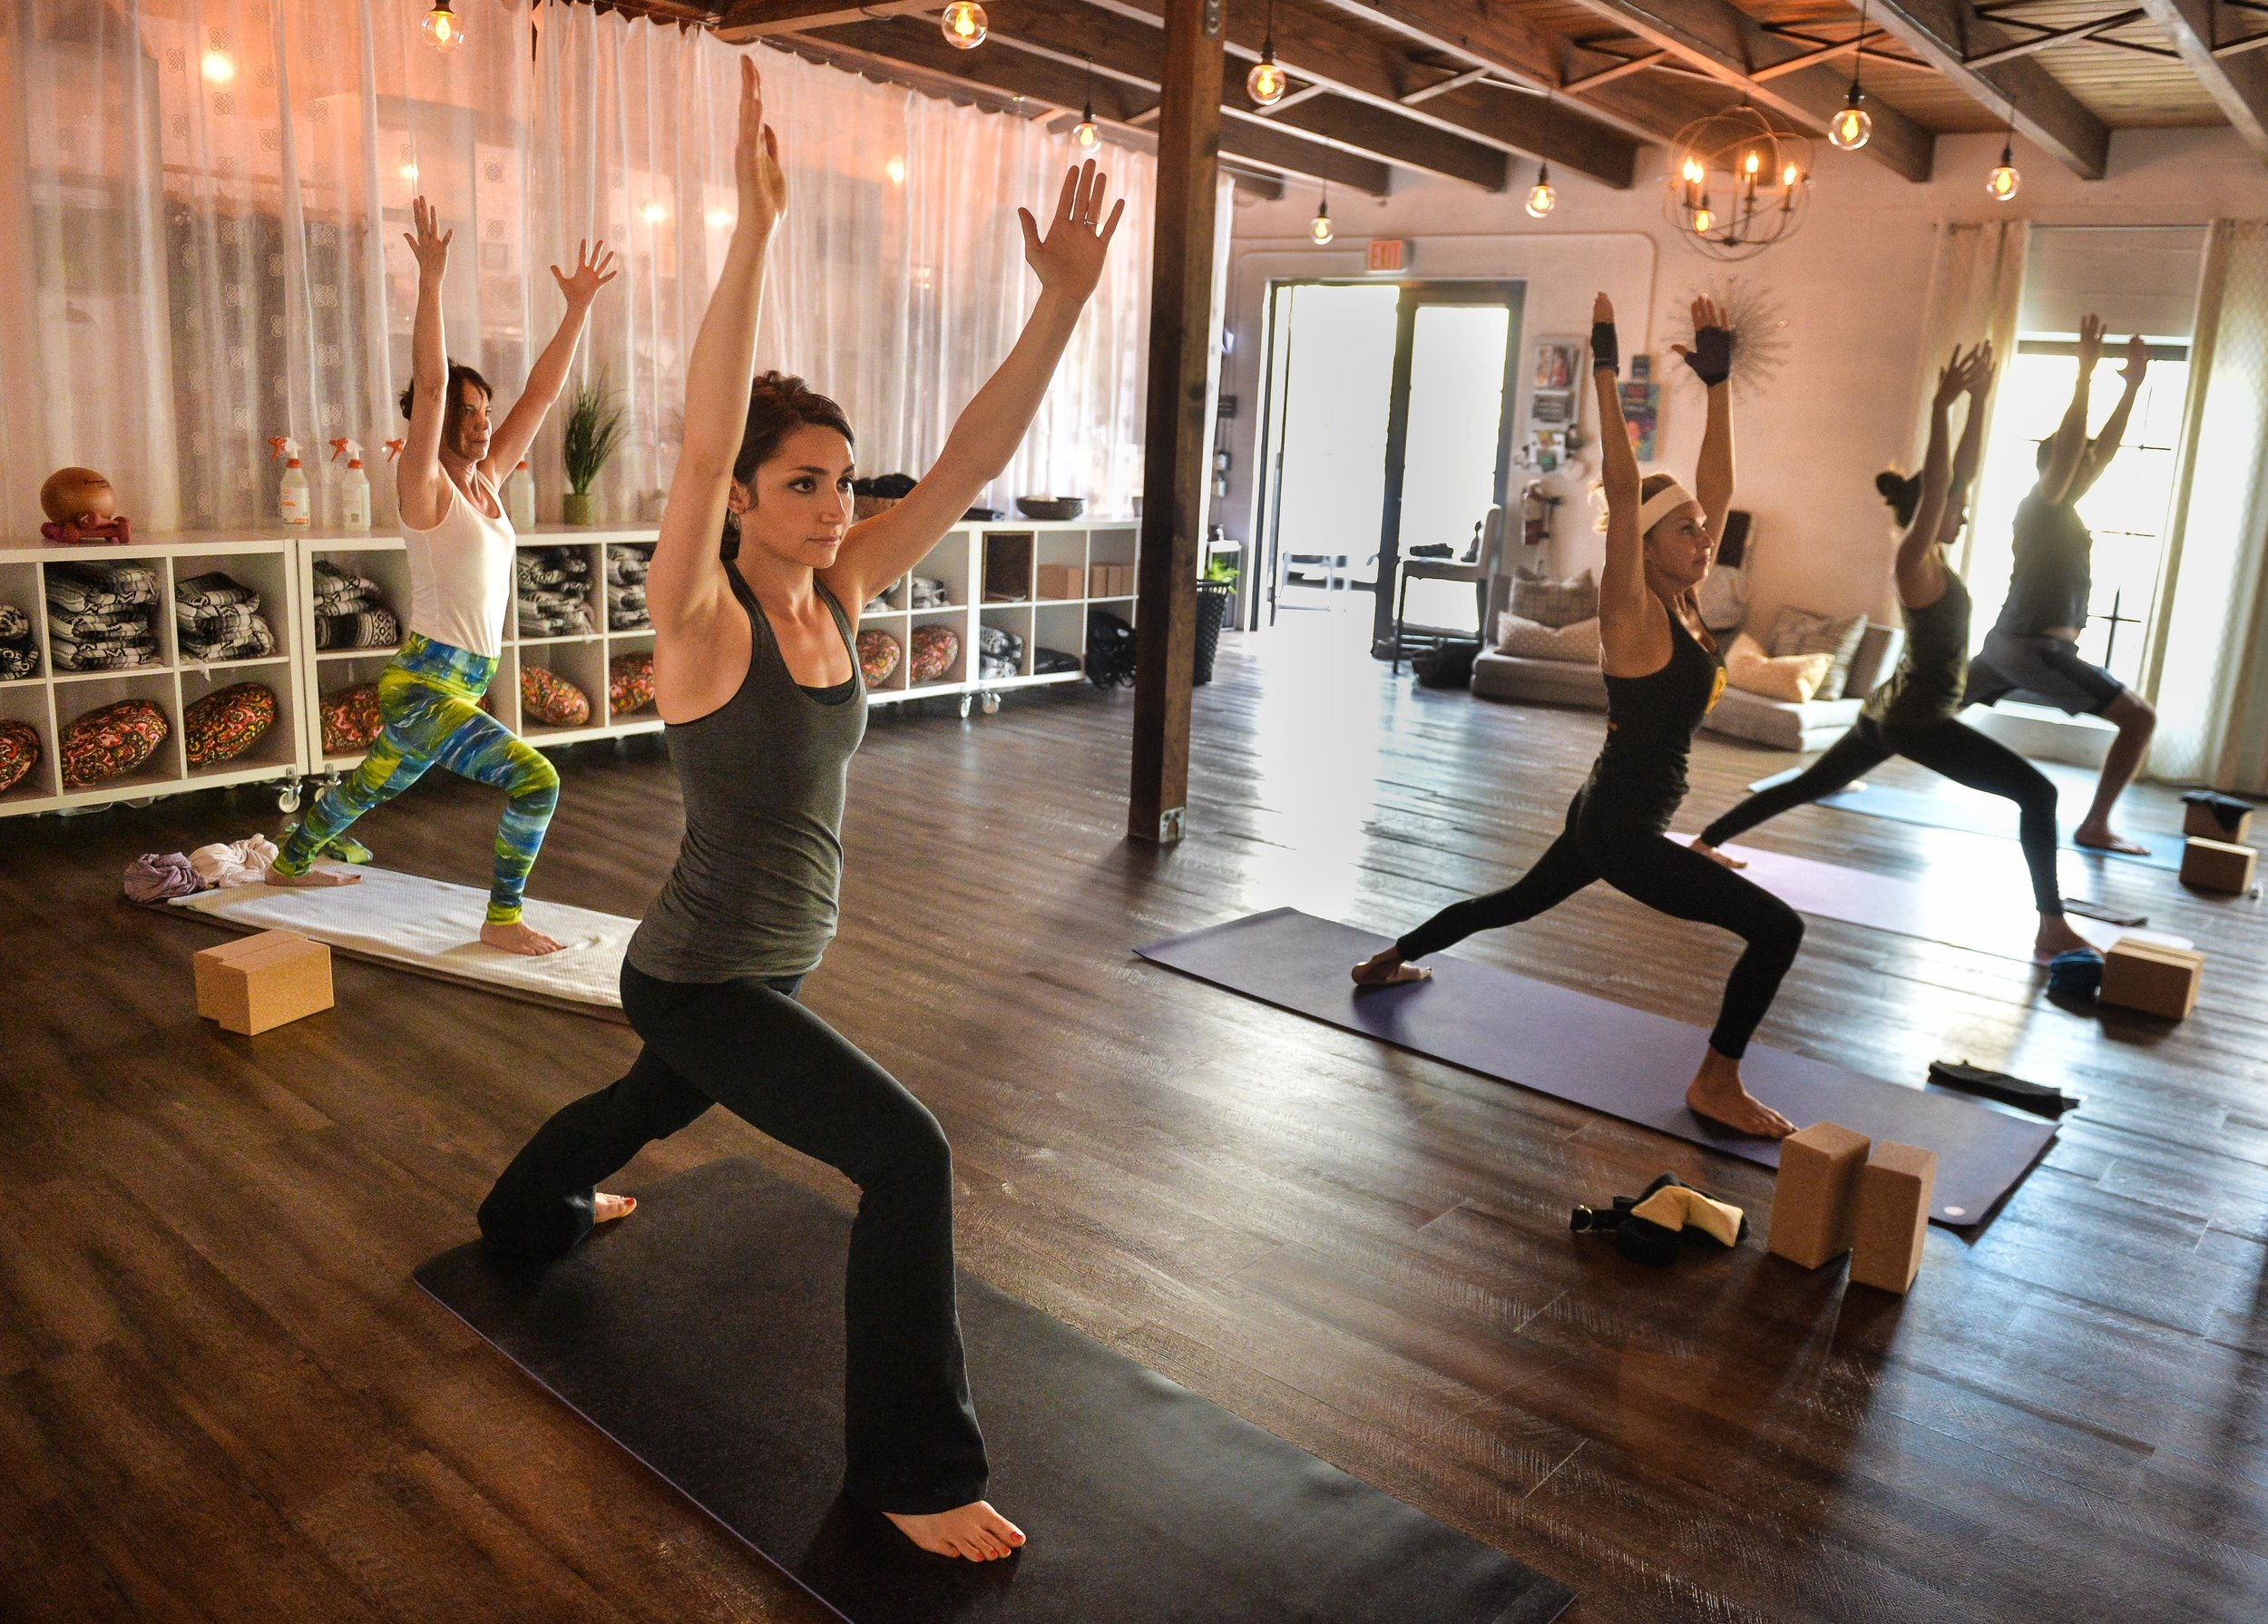 Pineapple Yoga - Burns Square Historic Vacation Rentals